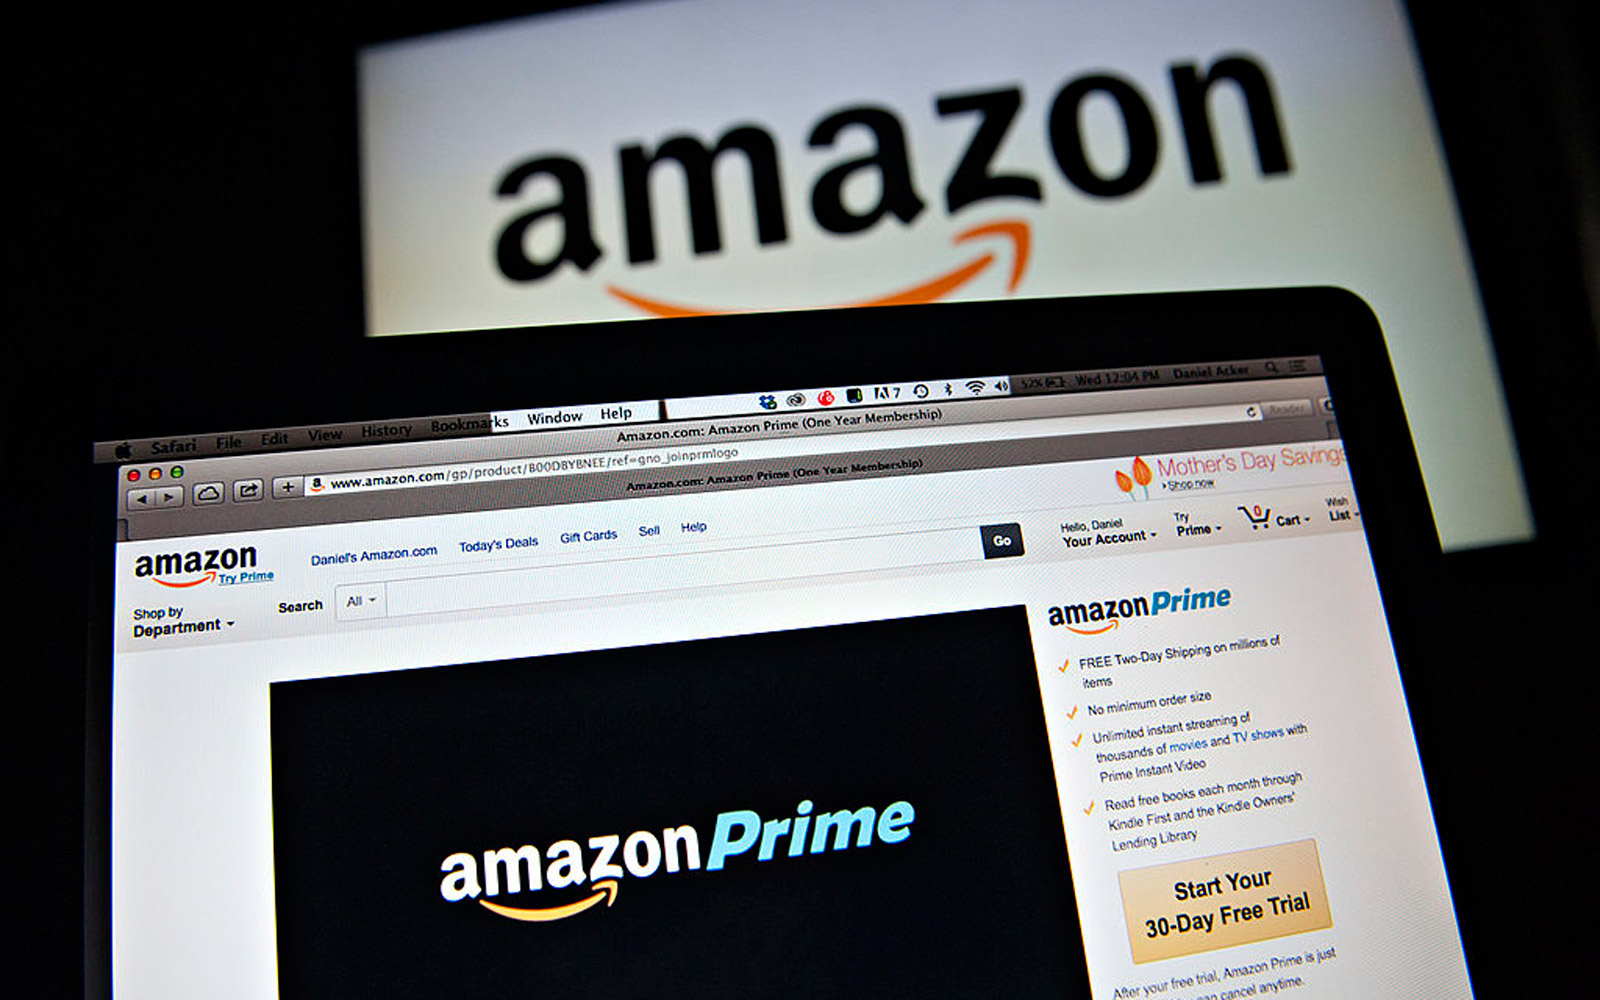 Amazon Prime: How to Get Best Deals, Low Prices, Save Money